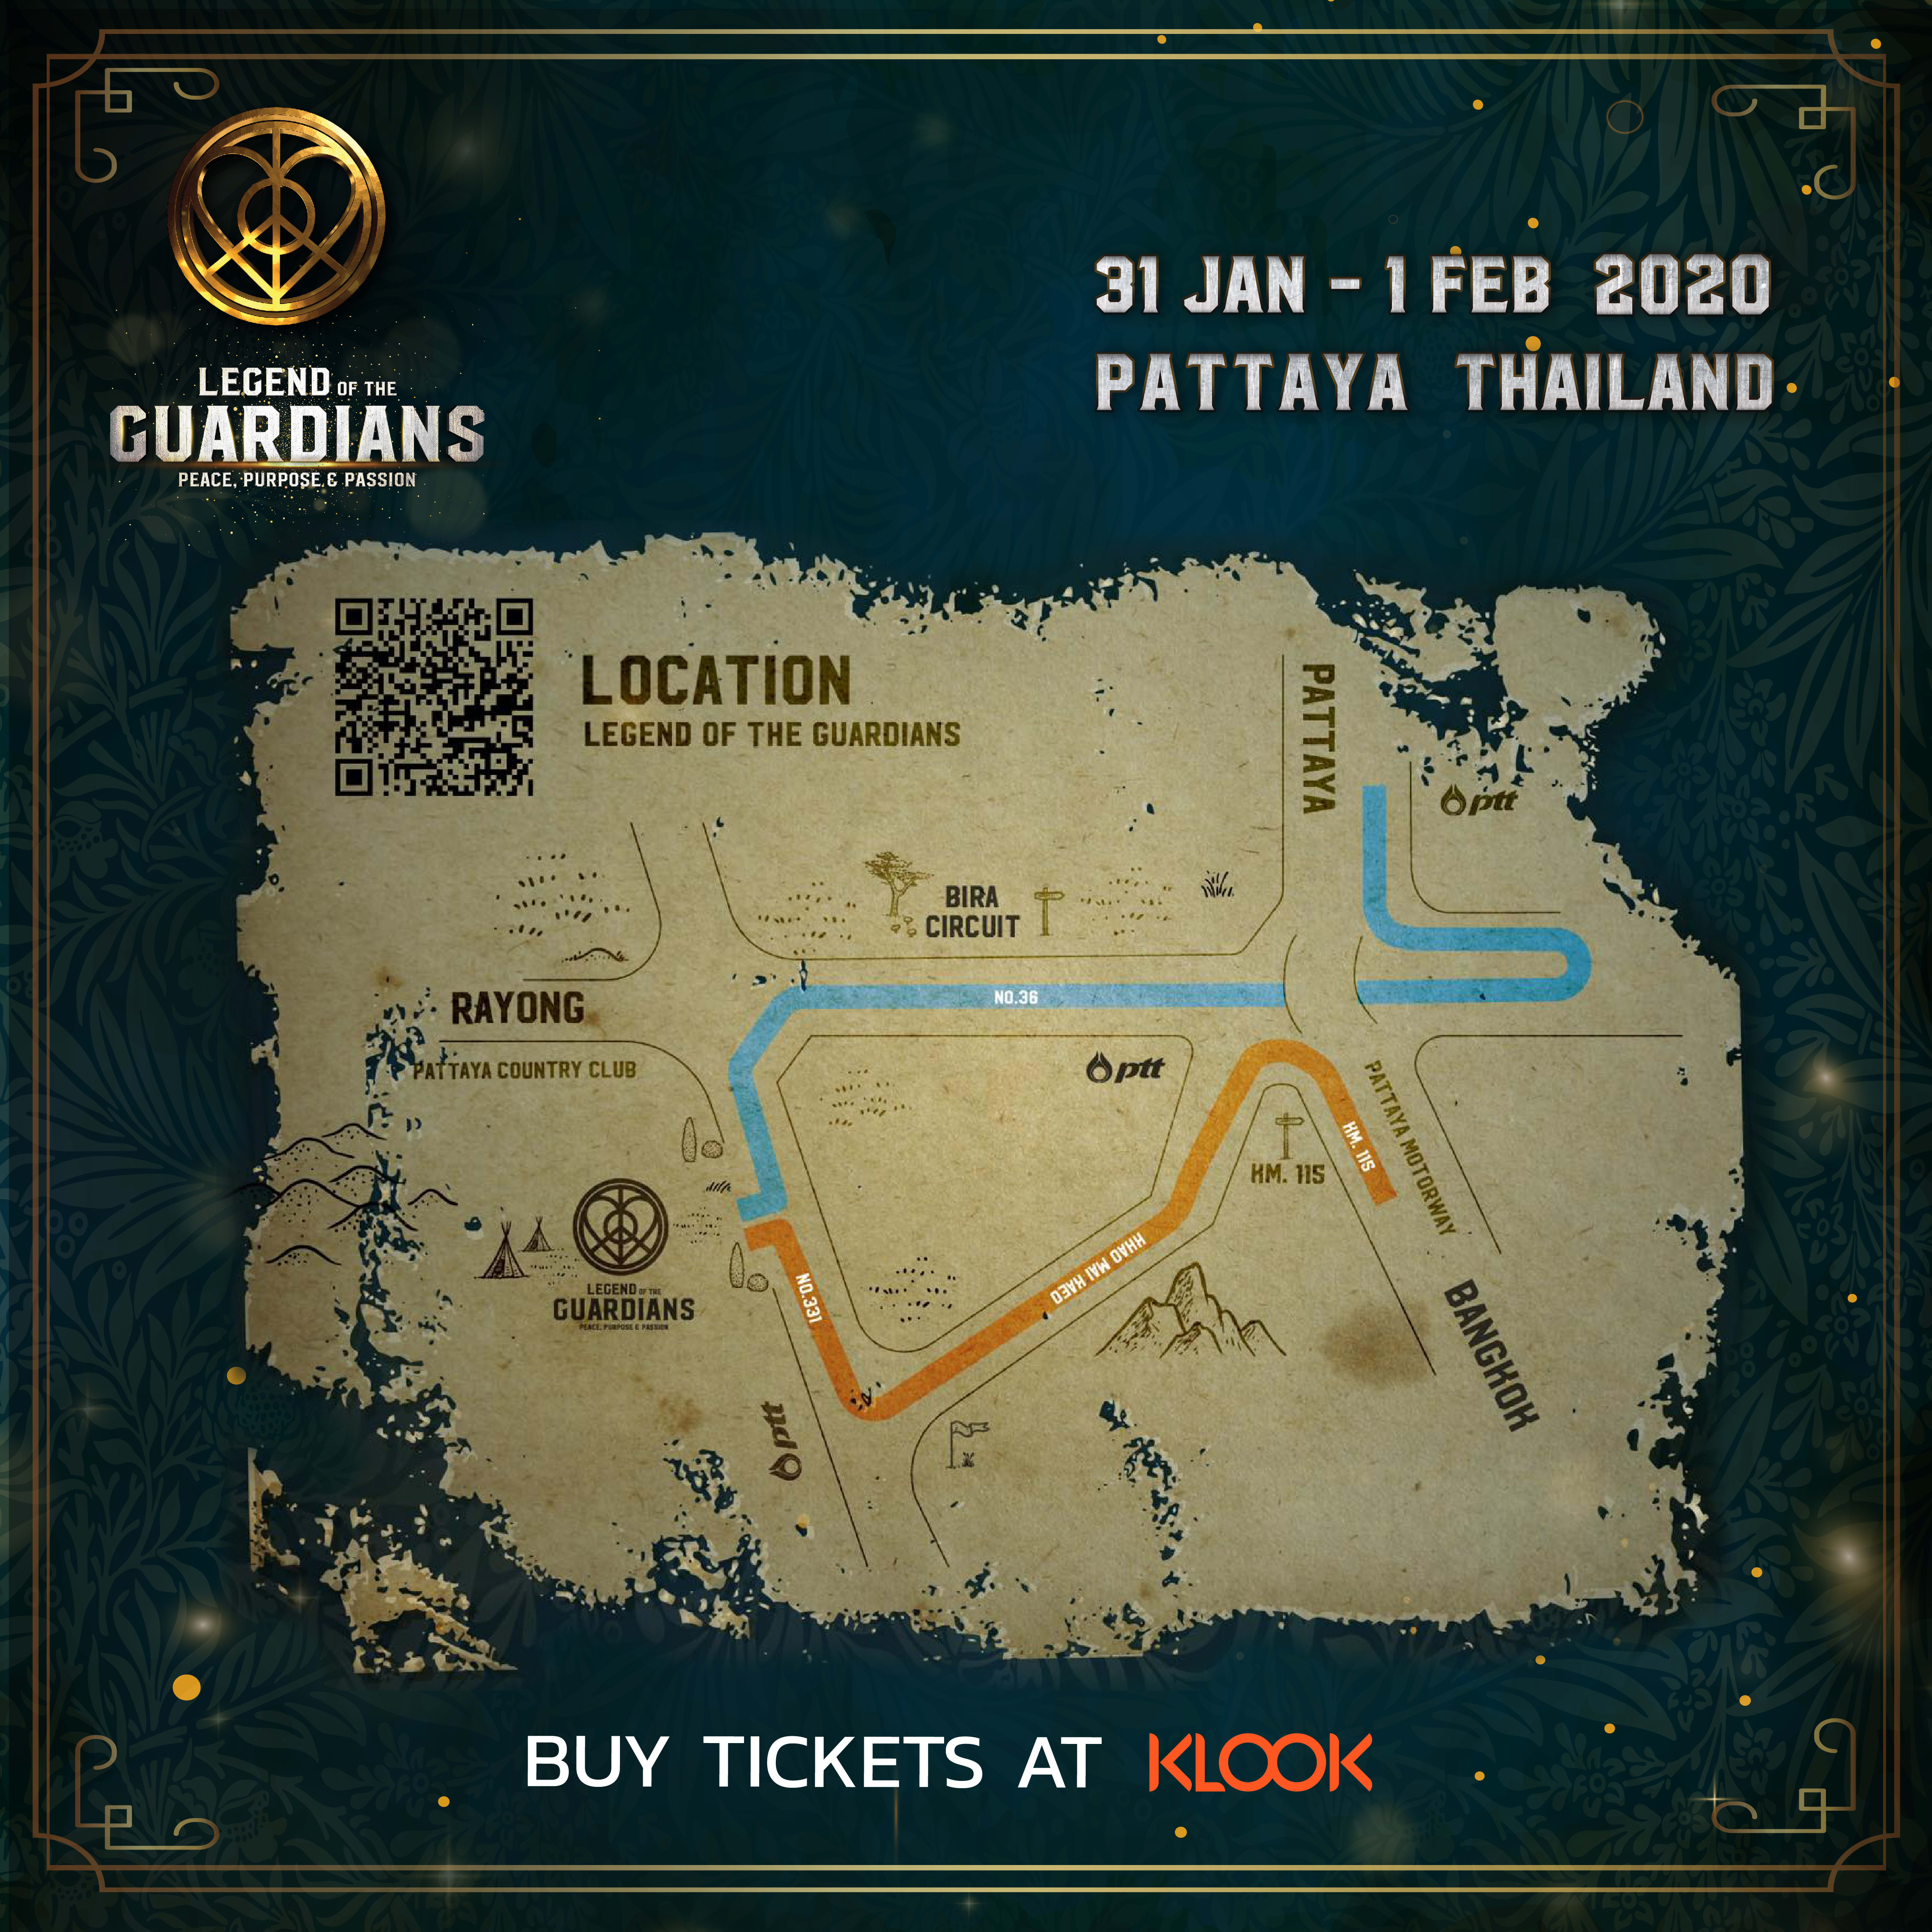 legend-of-the-guardians-thailand-map-location